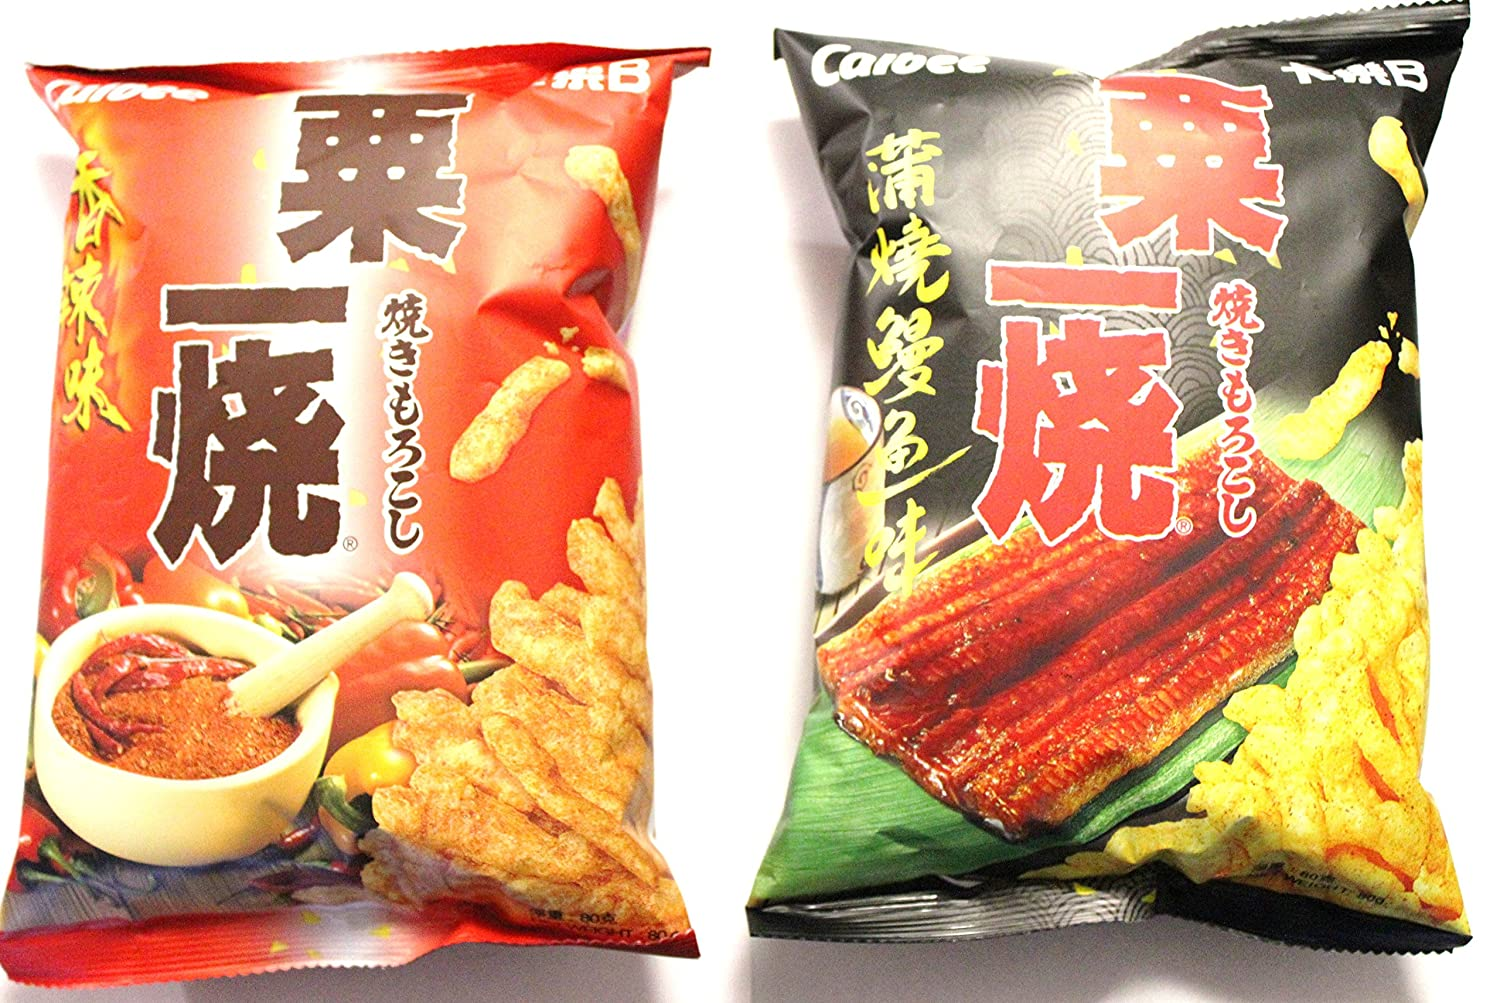 Dallas Mall store Calbee Hot Spicy and Eel Chips Va Kabayaki Flavored Grill-a-Corn